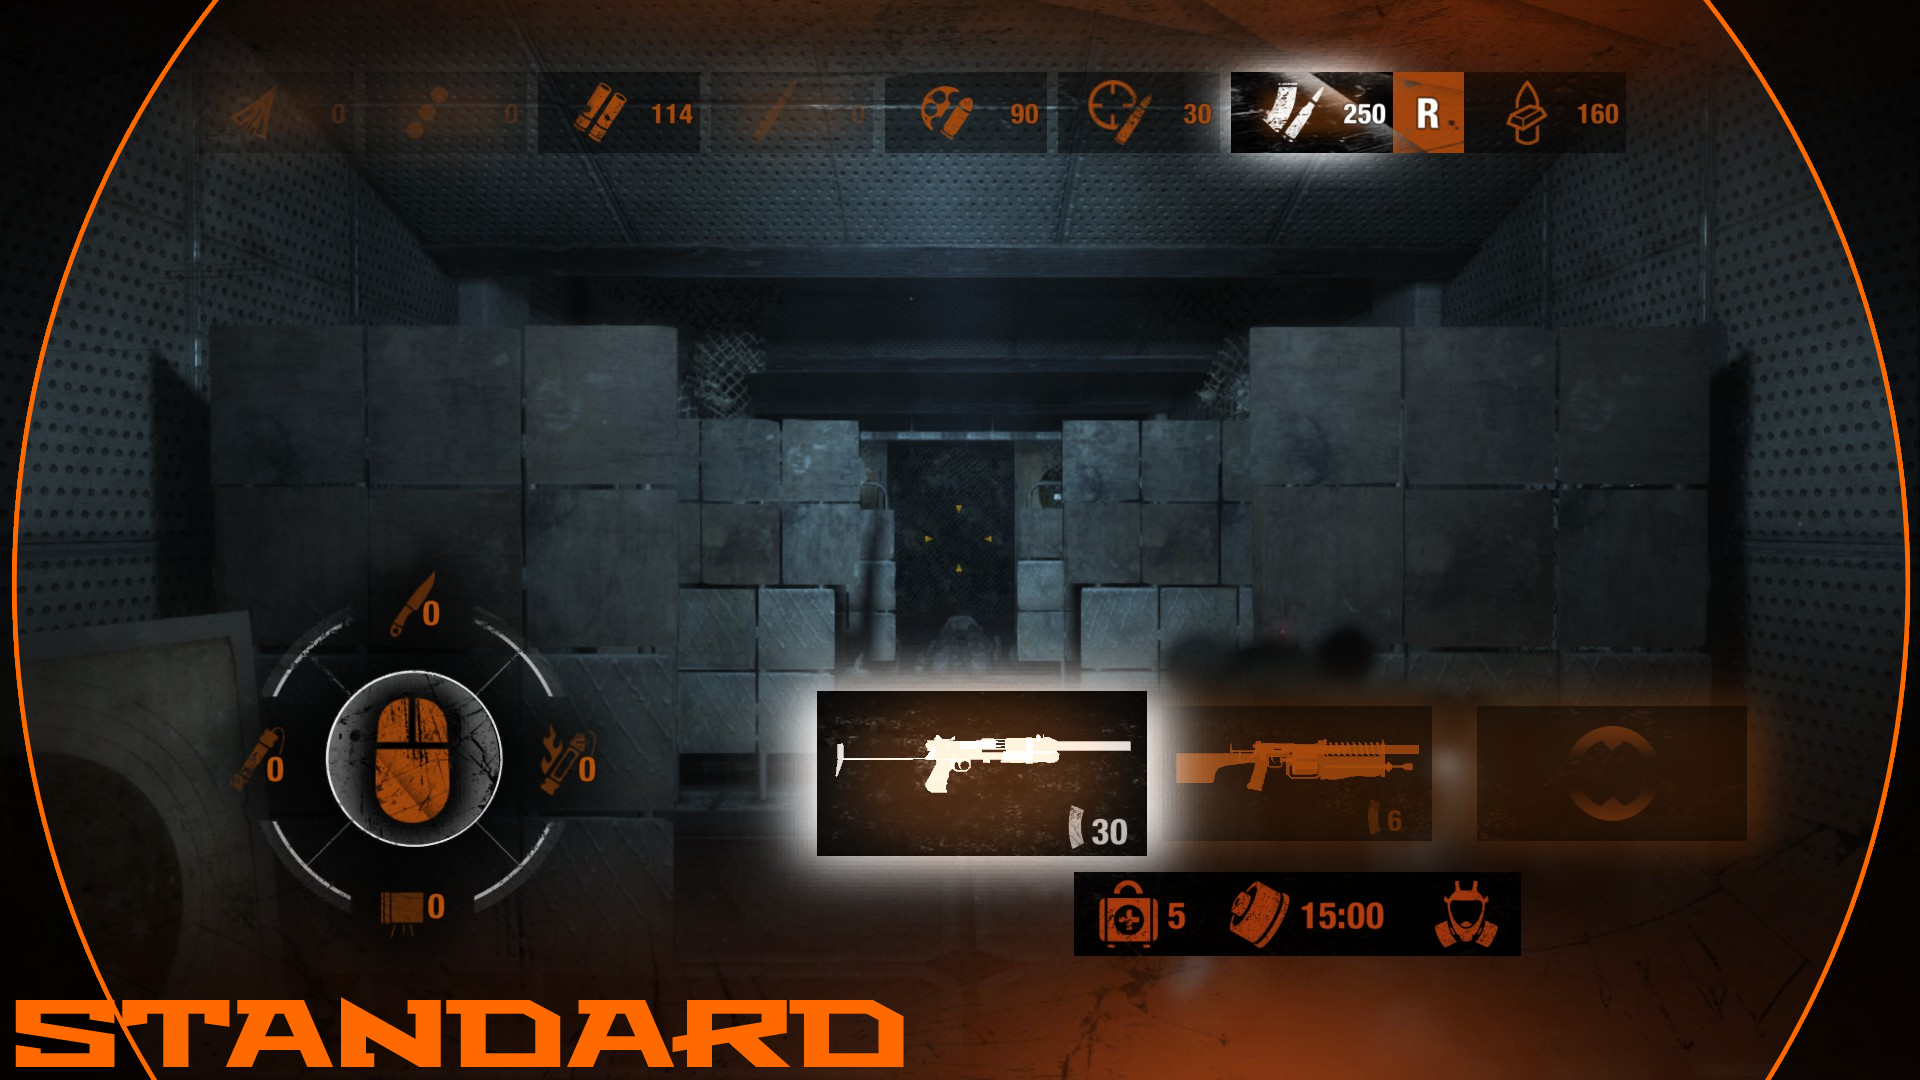 Metro 2033 Style HUD image - Ghost Land mod for S.T.A.L.K.E.R. ...